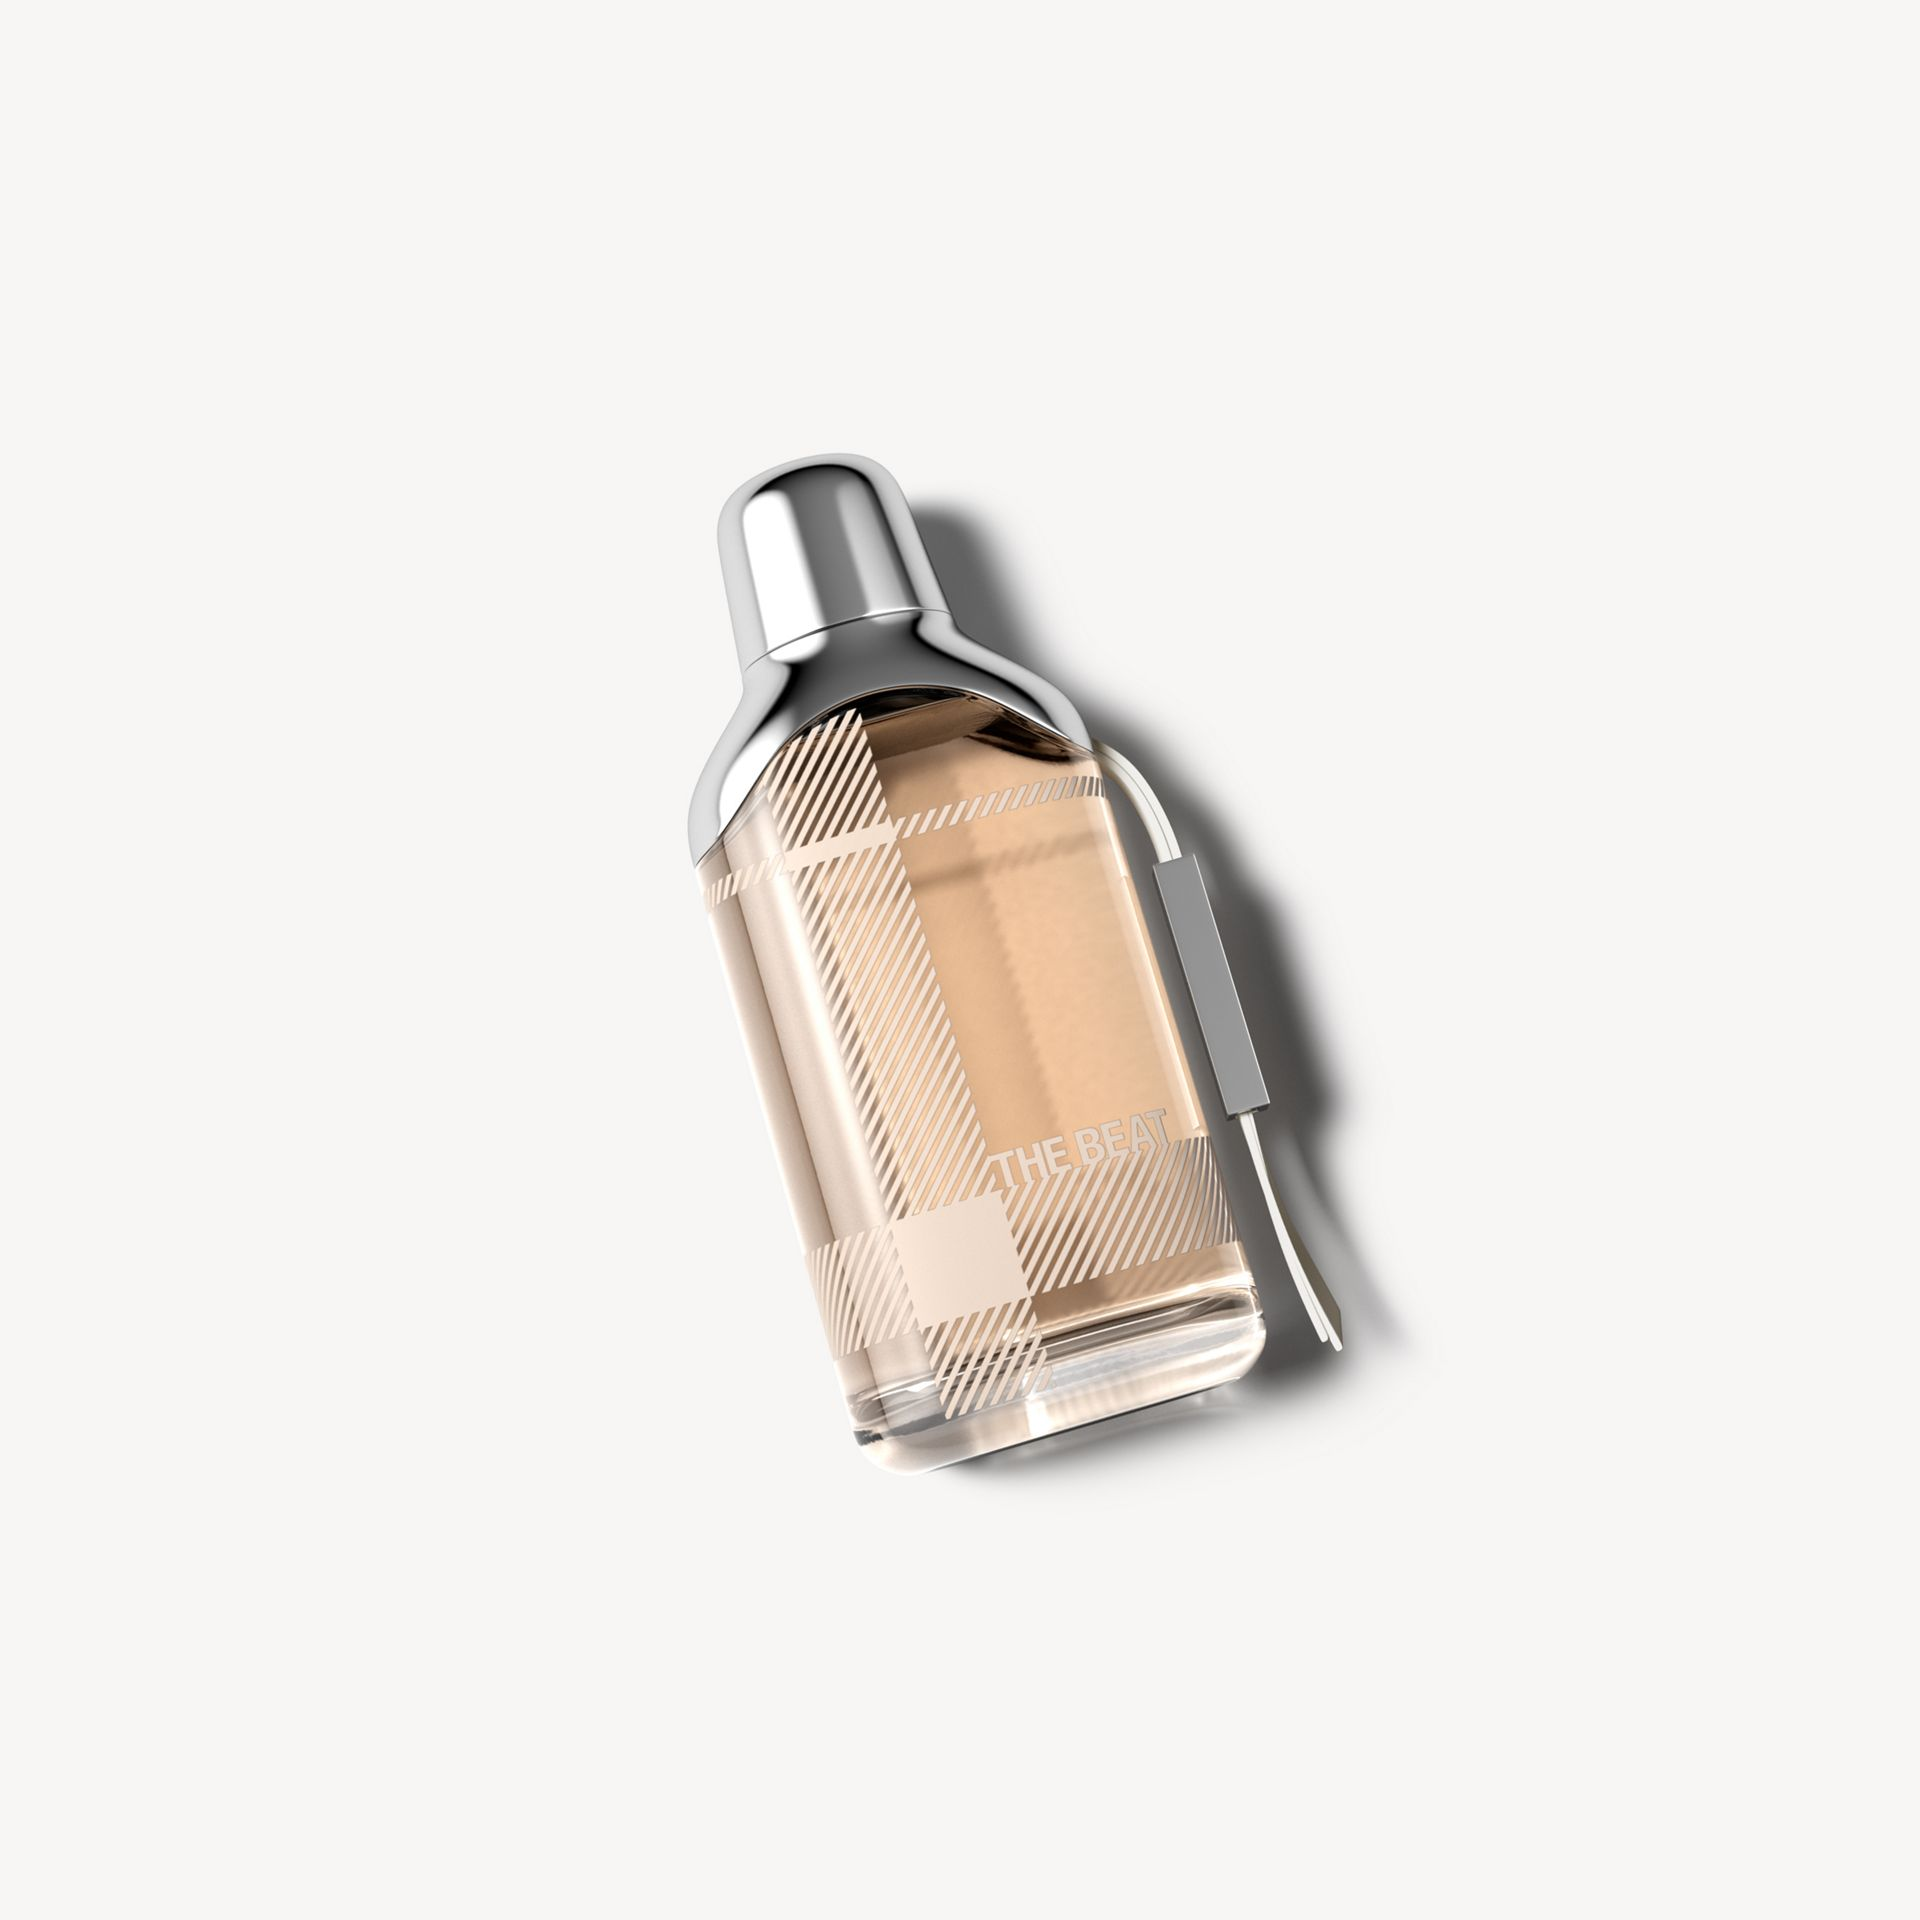 Burberry The Beat Eau de Parfum 50ml - gallery image 1